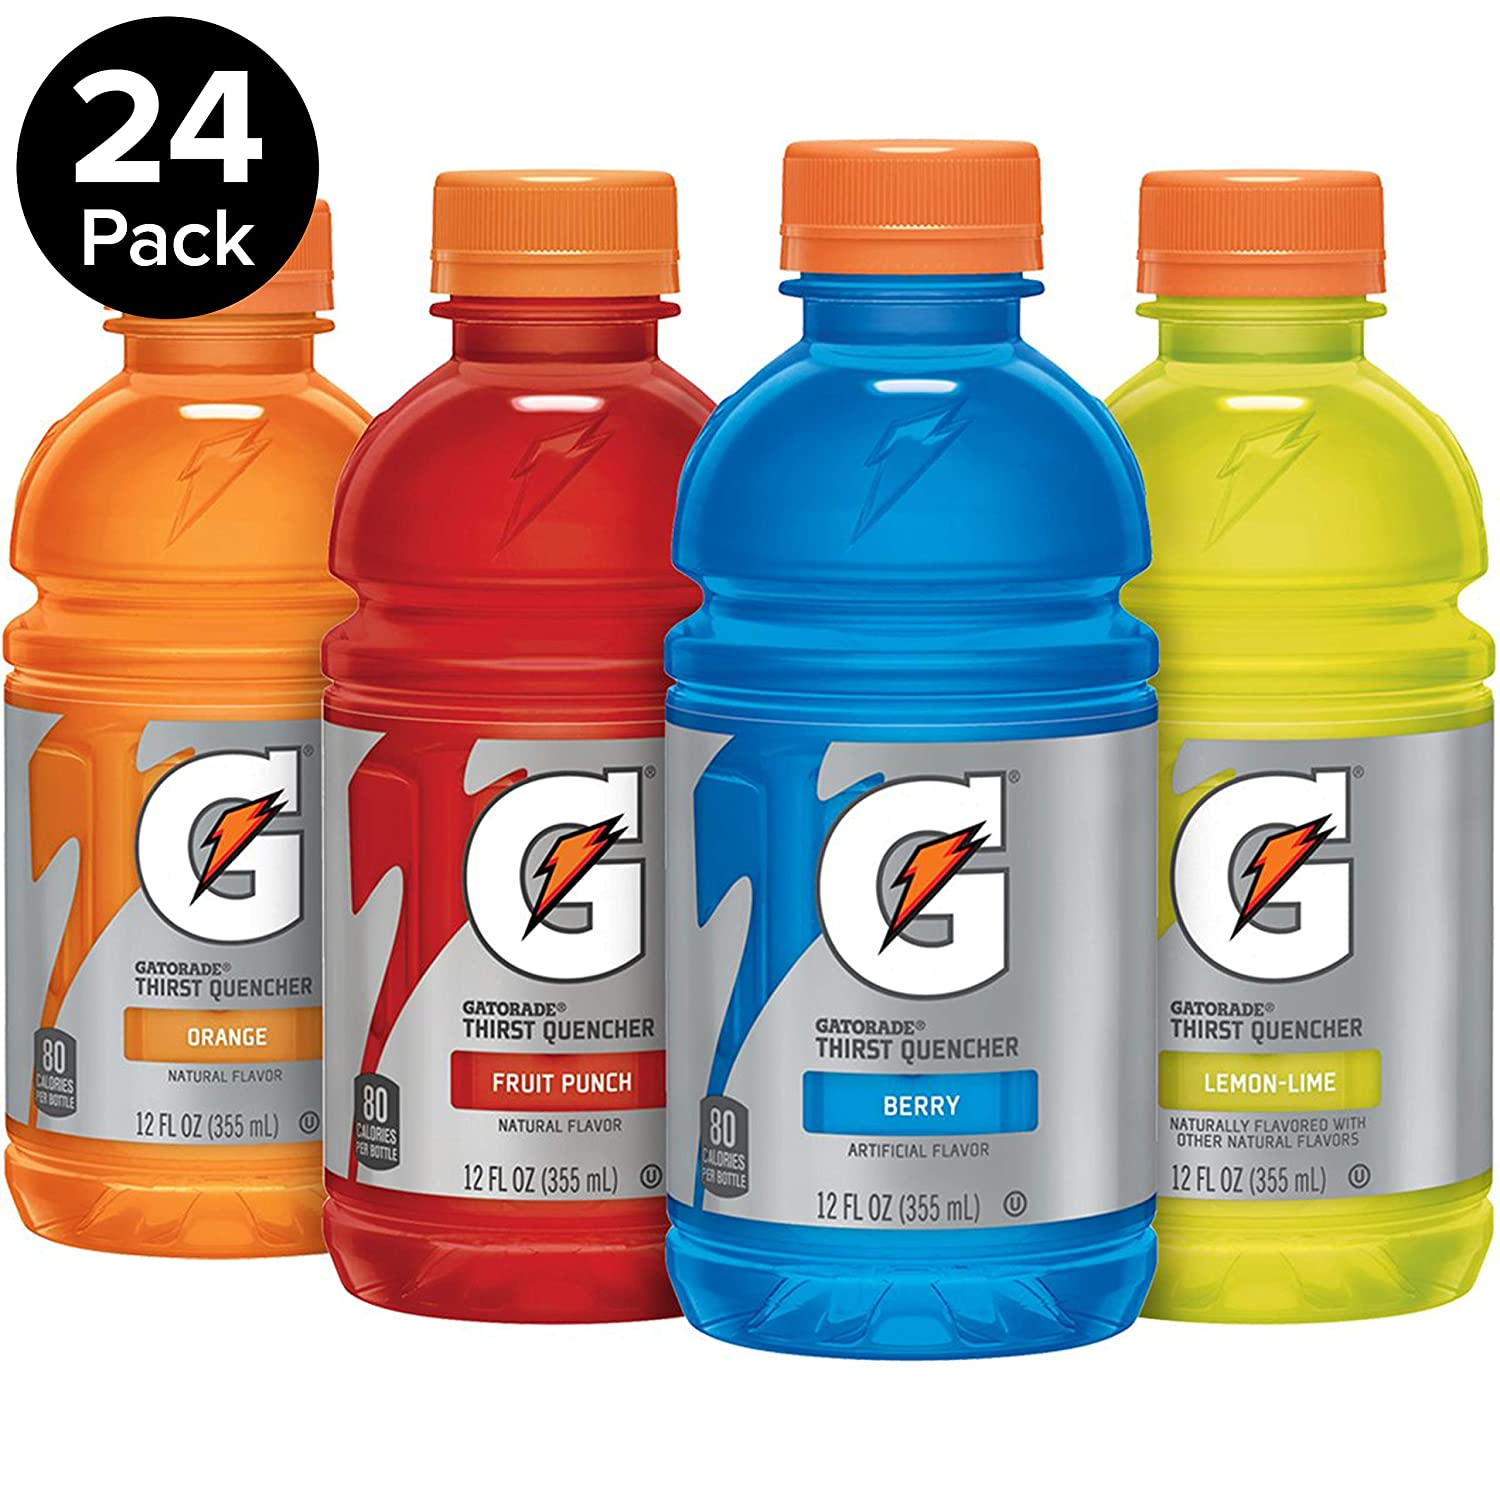 Gatorade 24-Count Variety Pack Only $11.96 Shipped (Just 50¢ Each)